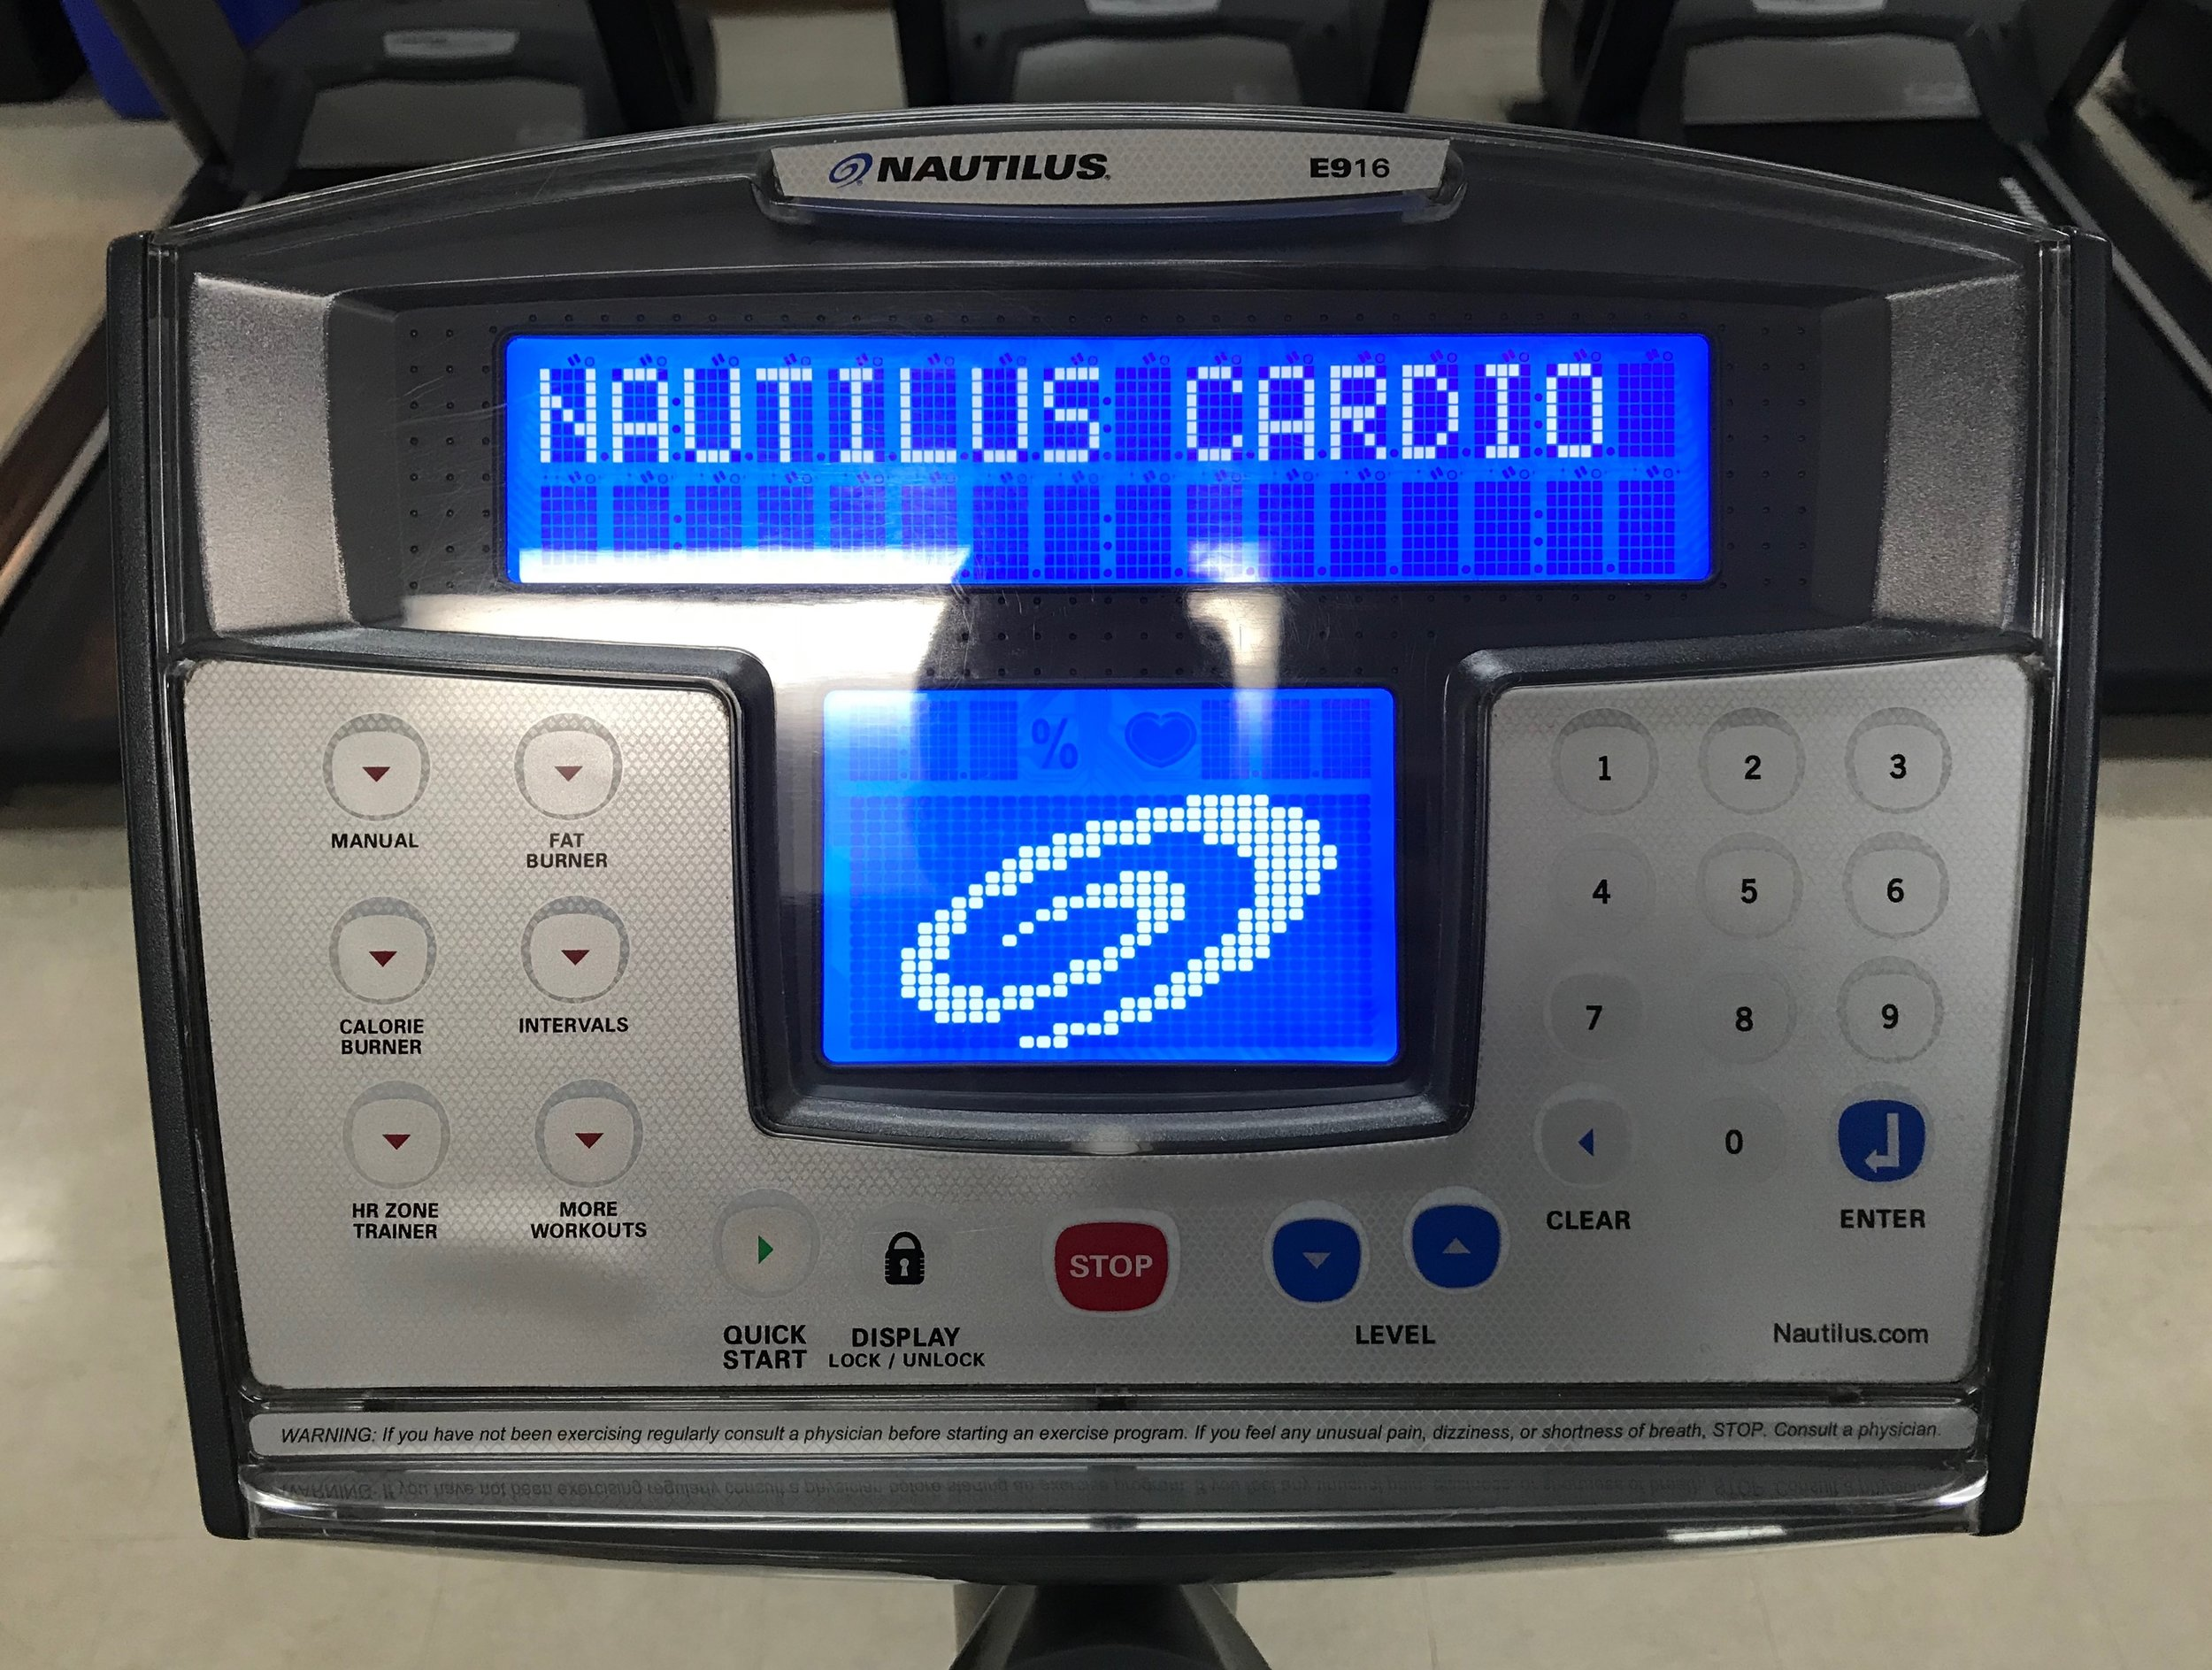 Nautilus E916 User Interface